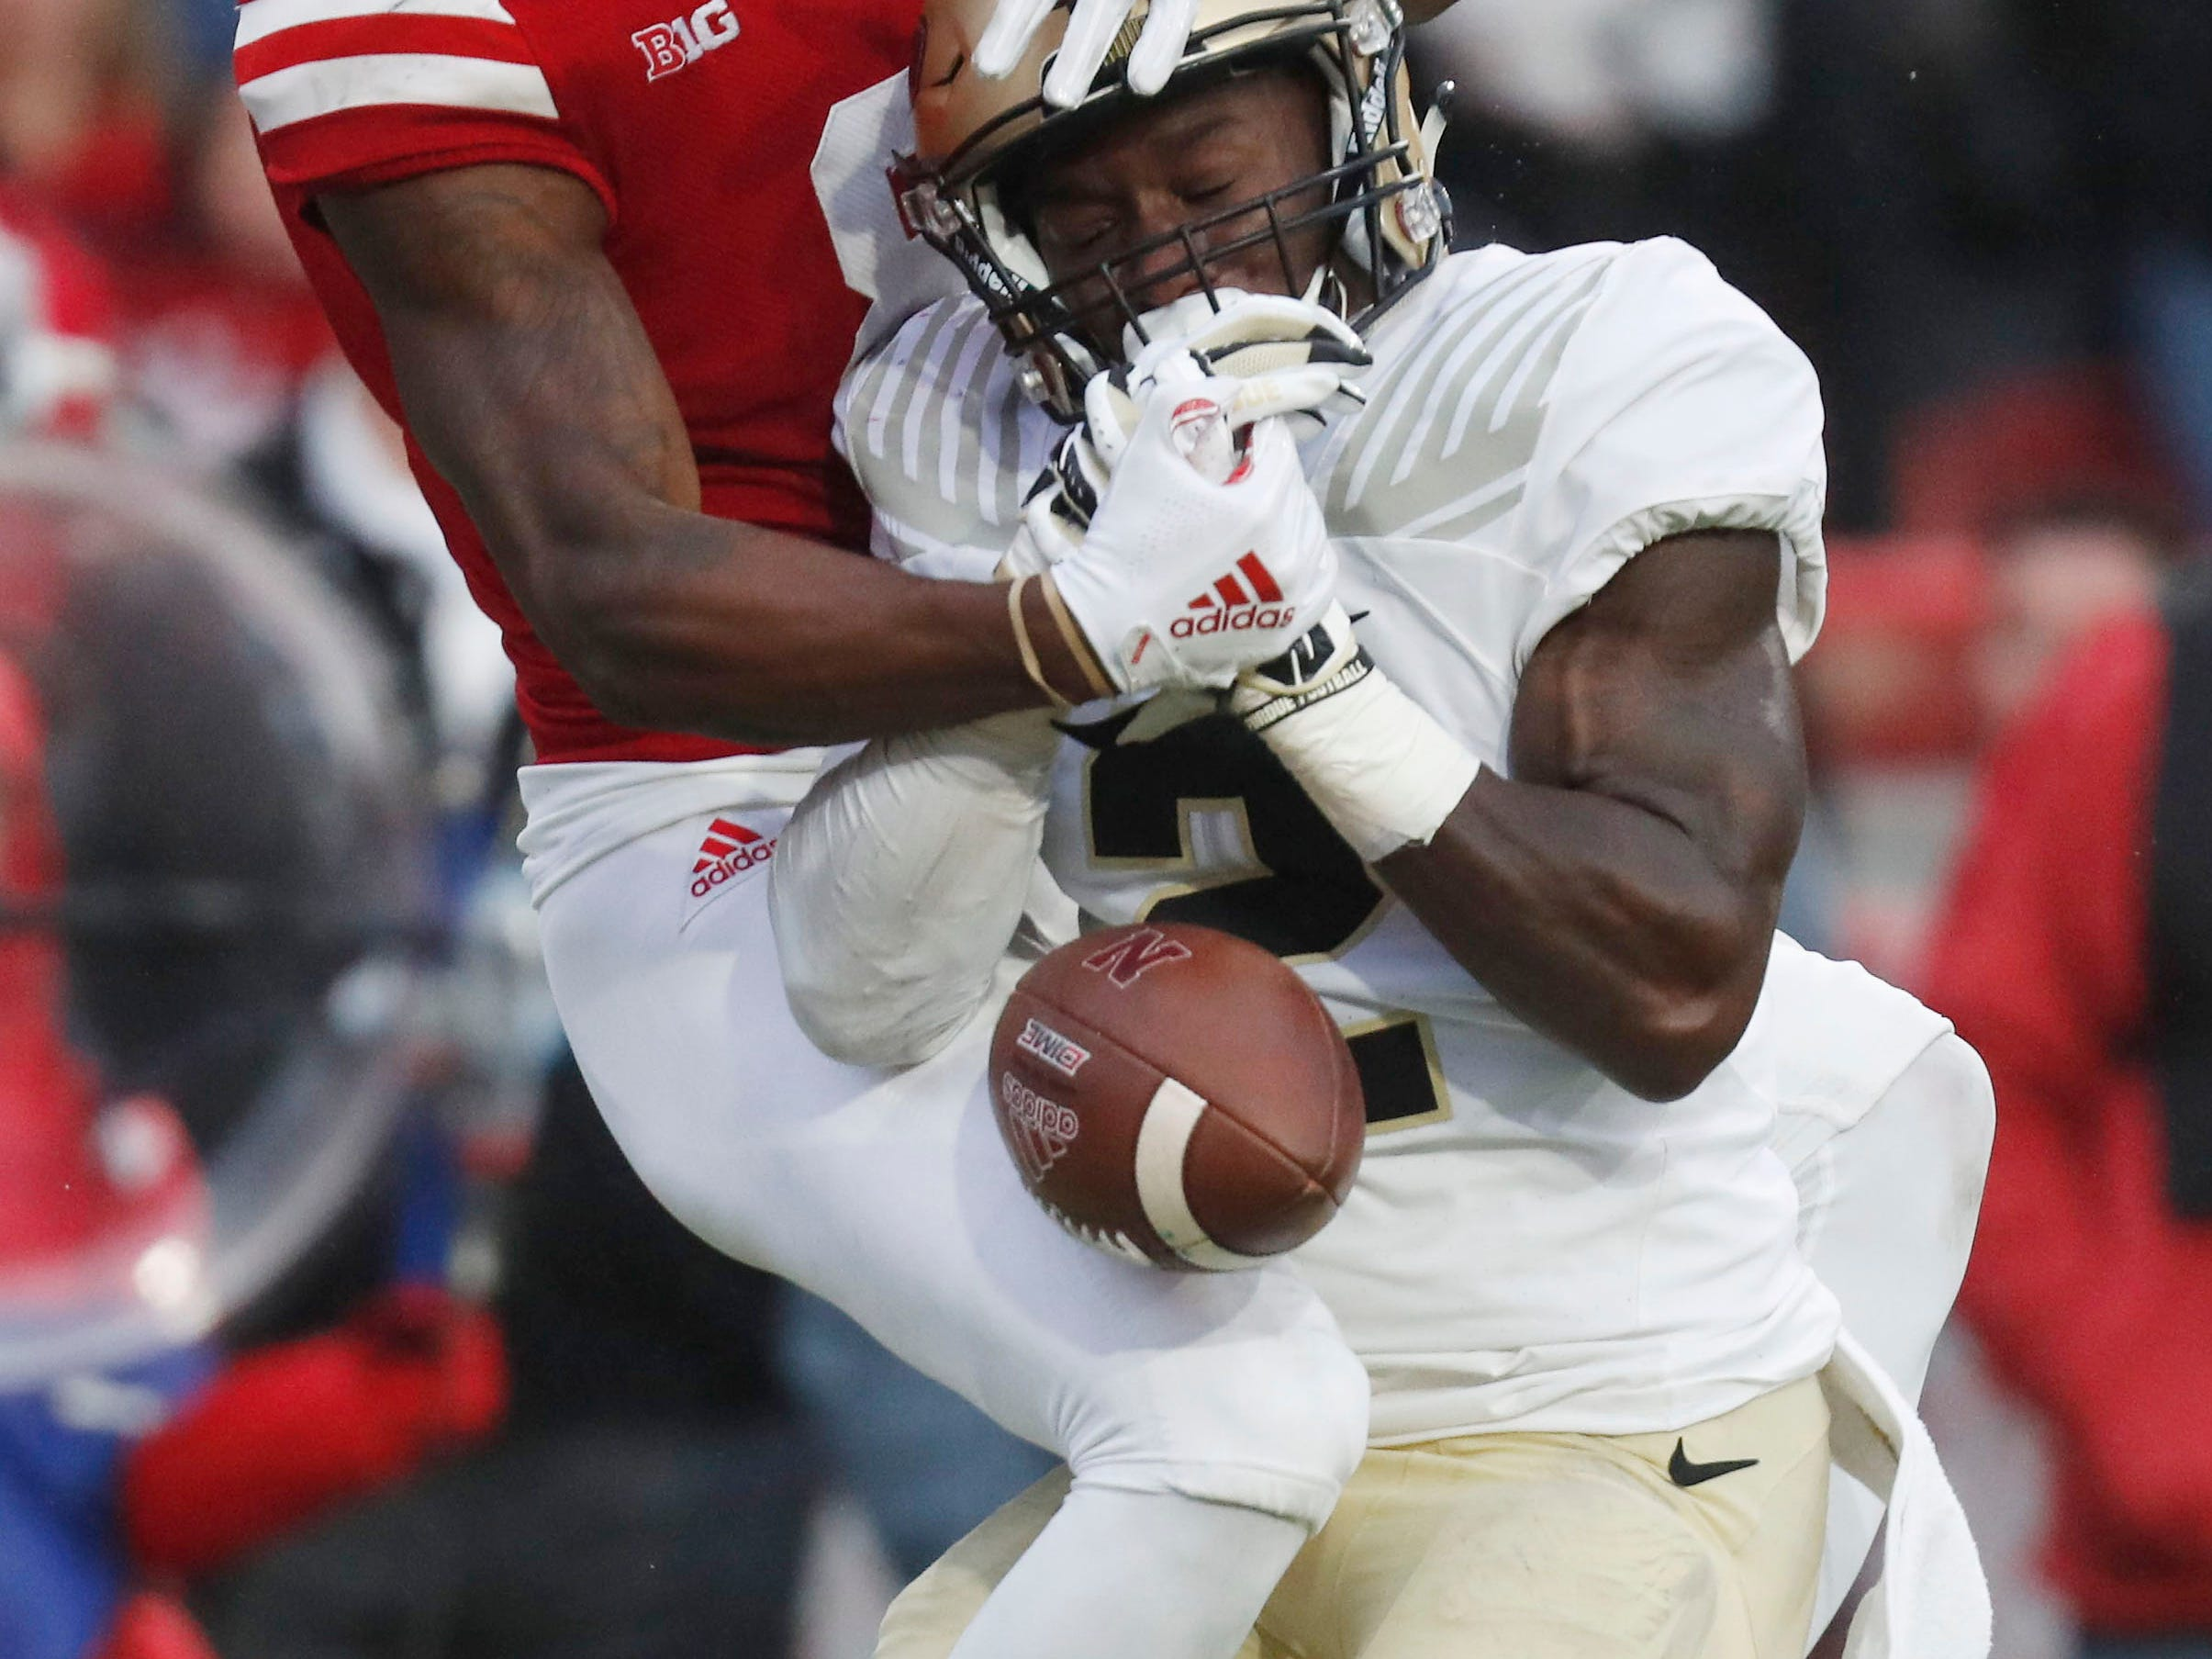 Sep 29, 2018; Lincoln, NE, USA; Purdue Boilermakers cornerback Kenneth Major (2) breaks up a pass in the end zone intended for Nebraska Cornhuskers wide receiver Stanley Morgan Jr. (8) in the second half at Memorial Stadium. Purdue won 42-28. Mandatory Credit: Bruce Thorson-USA TODAY Sports